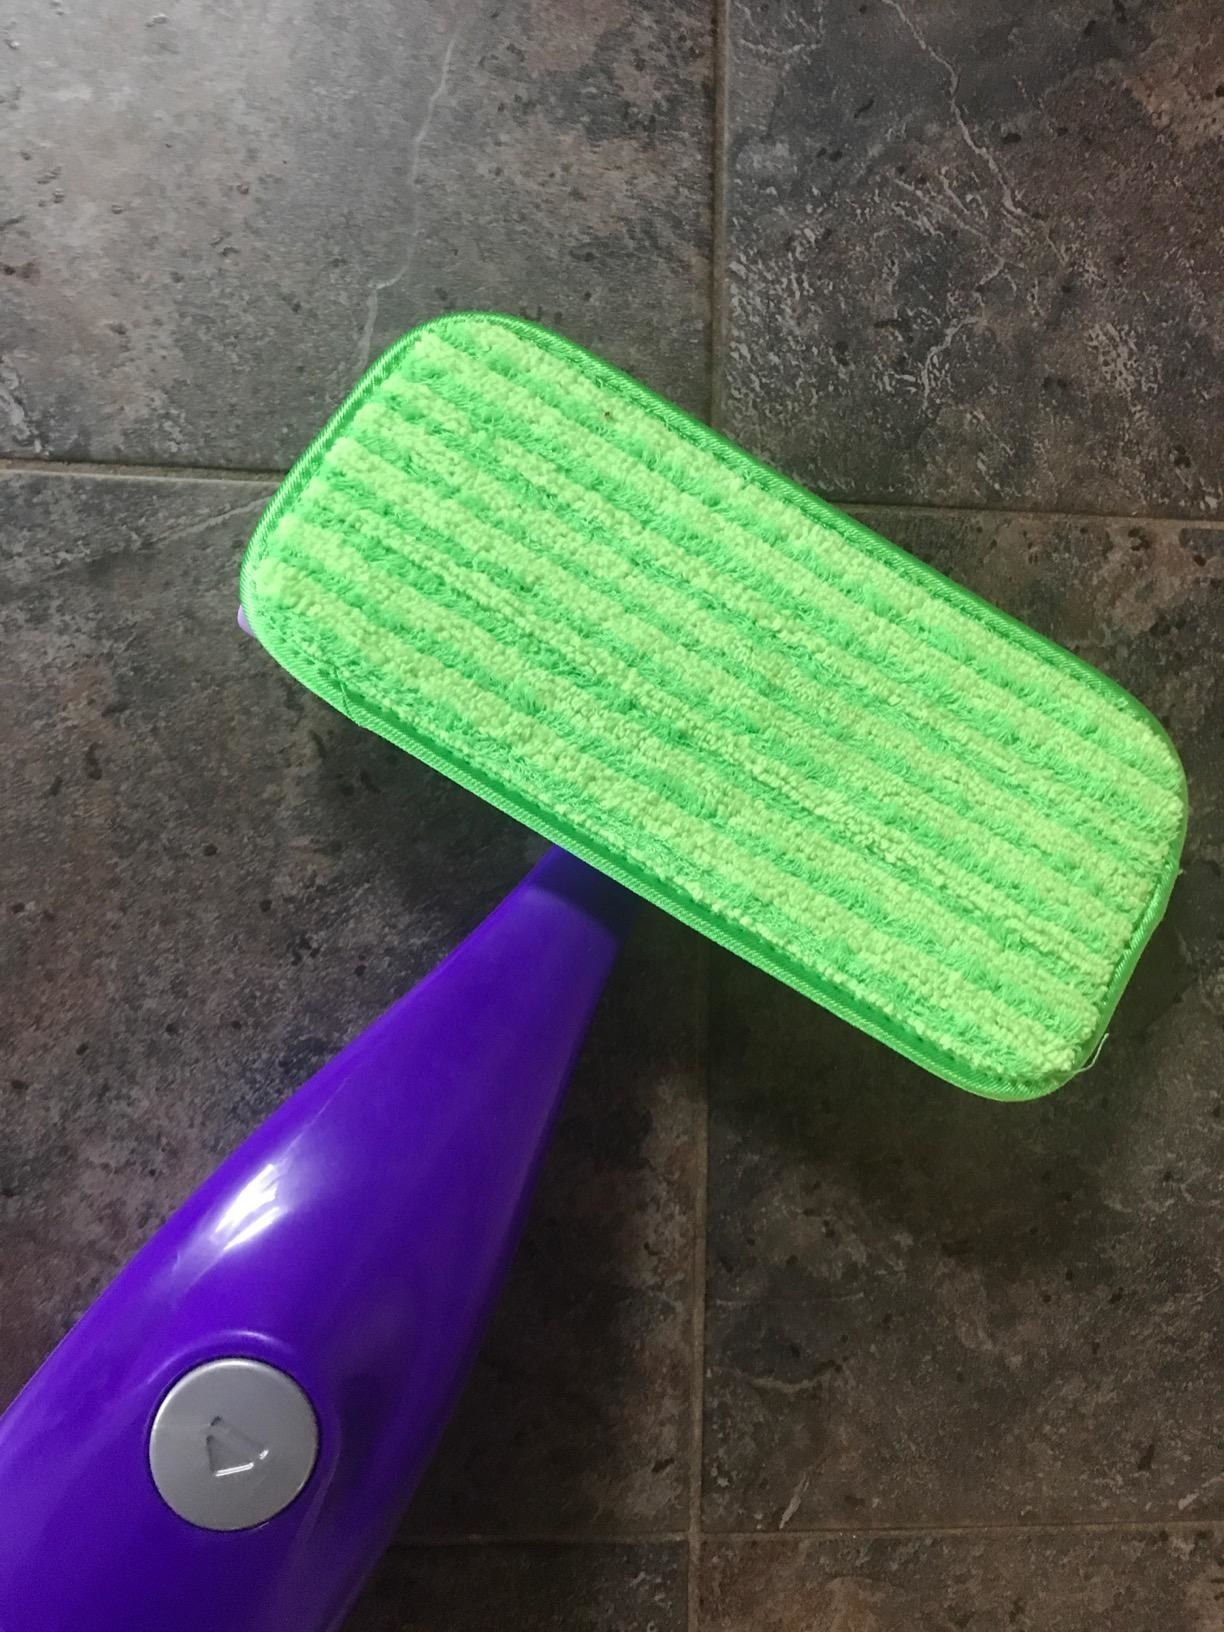 A reviewer's photo of a purple mop handle with the green cleaning pad attached